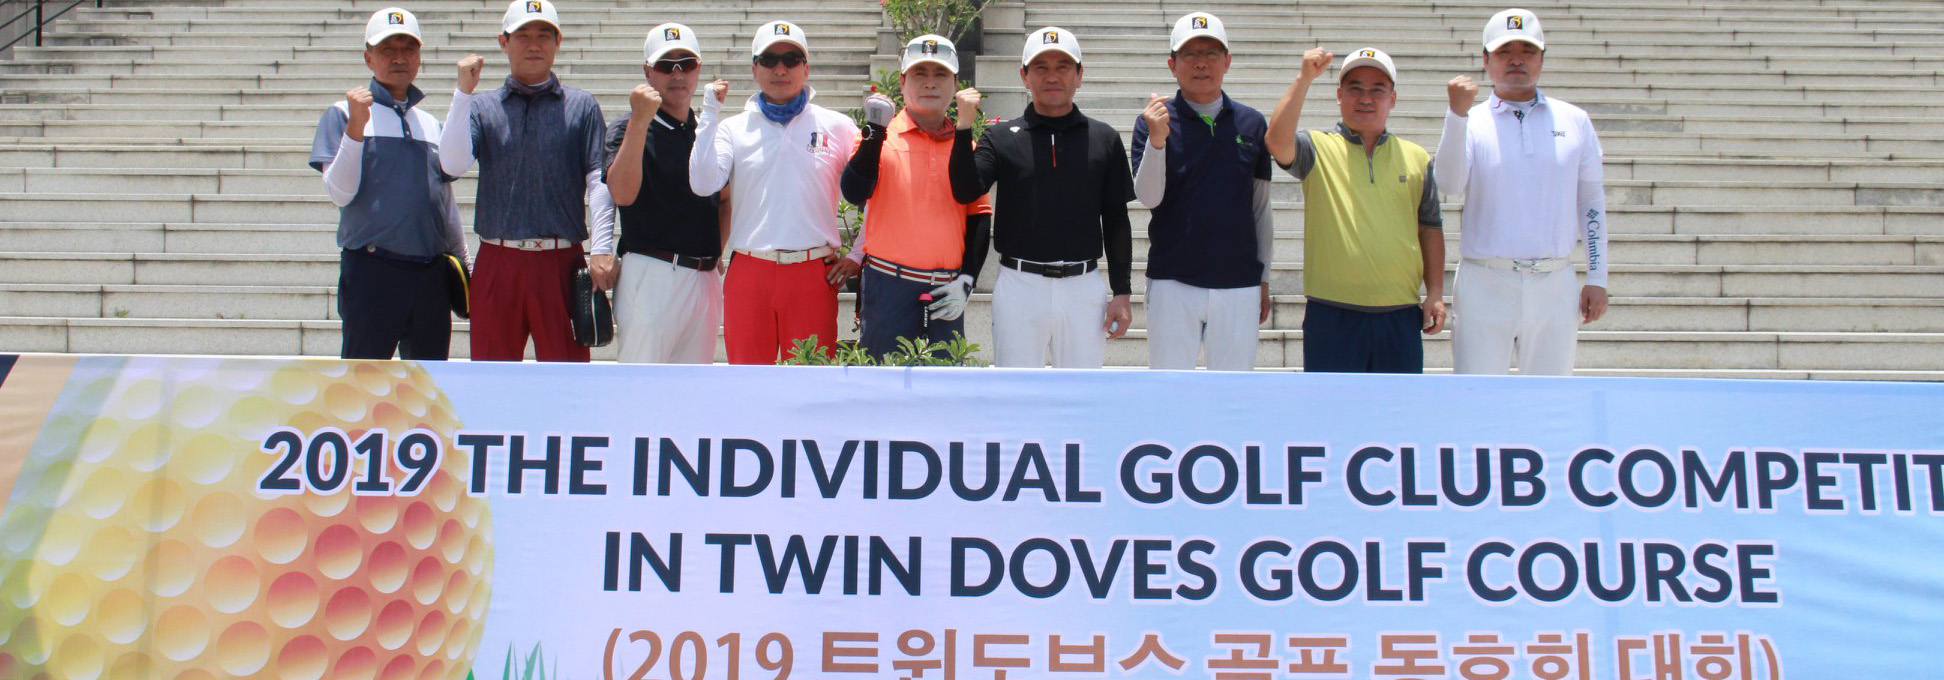 The Individual Golf Club Competition on 11th May 2019